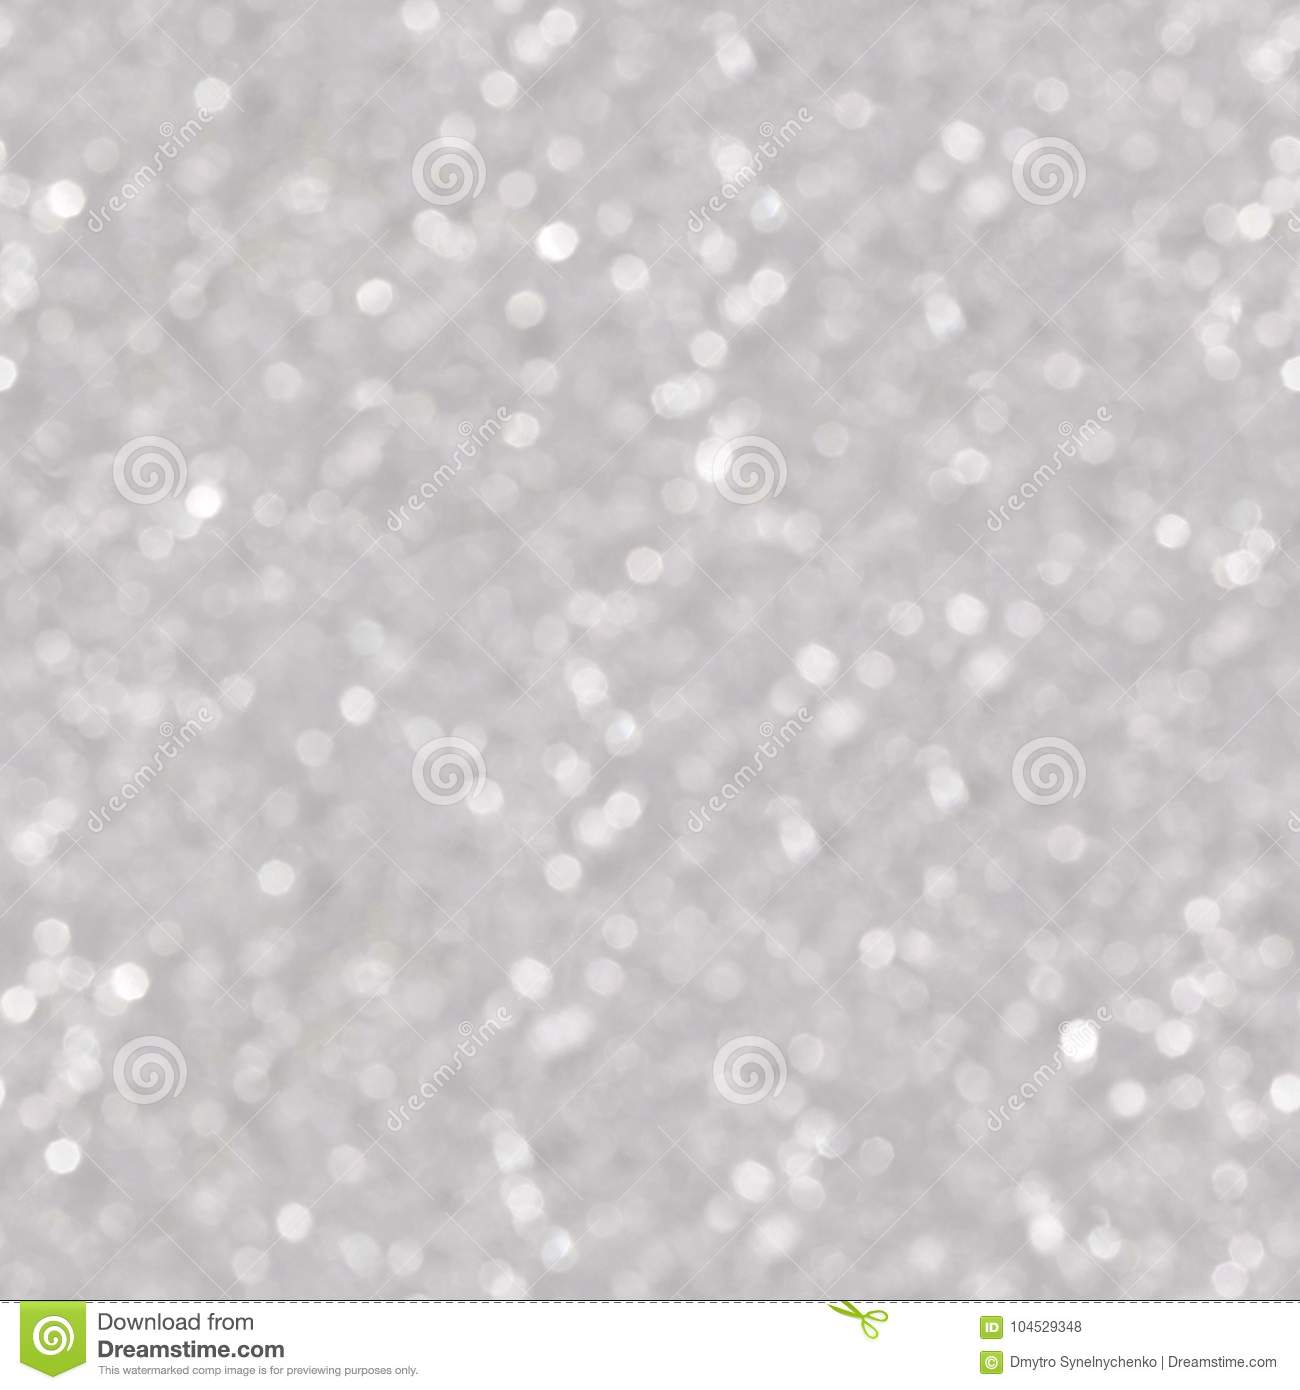 Silver and white bokeh lights. Seamless square texture.